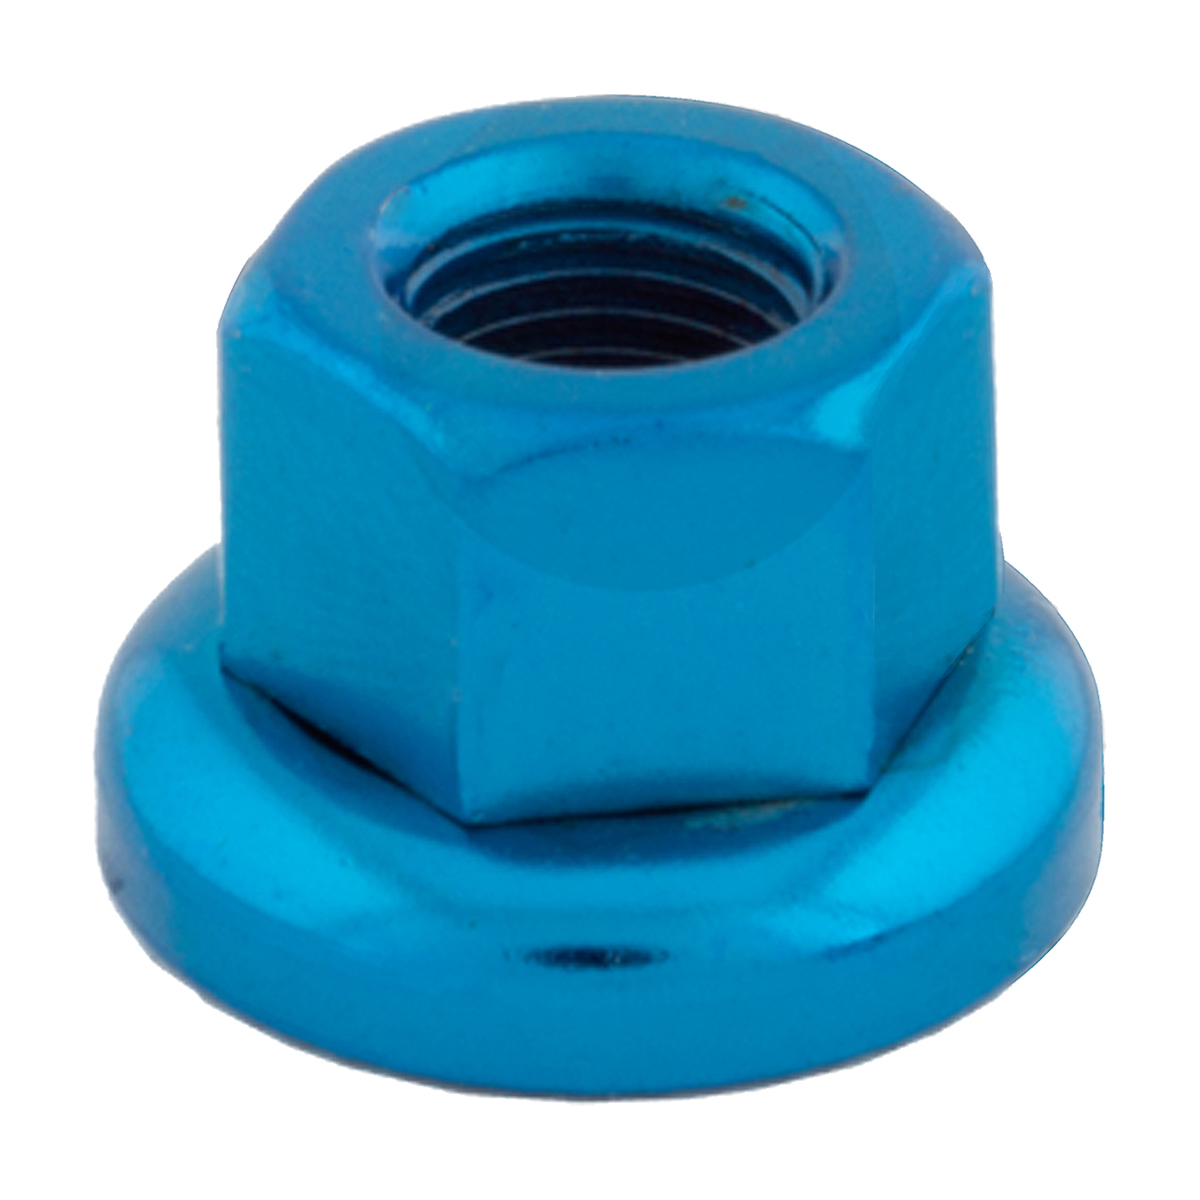 Track Axle nuts Blue M10 x 1 Chromoly Pair for Rear Hub